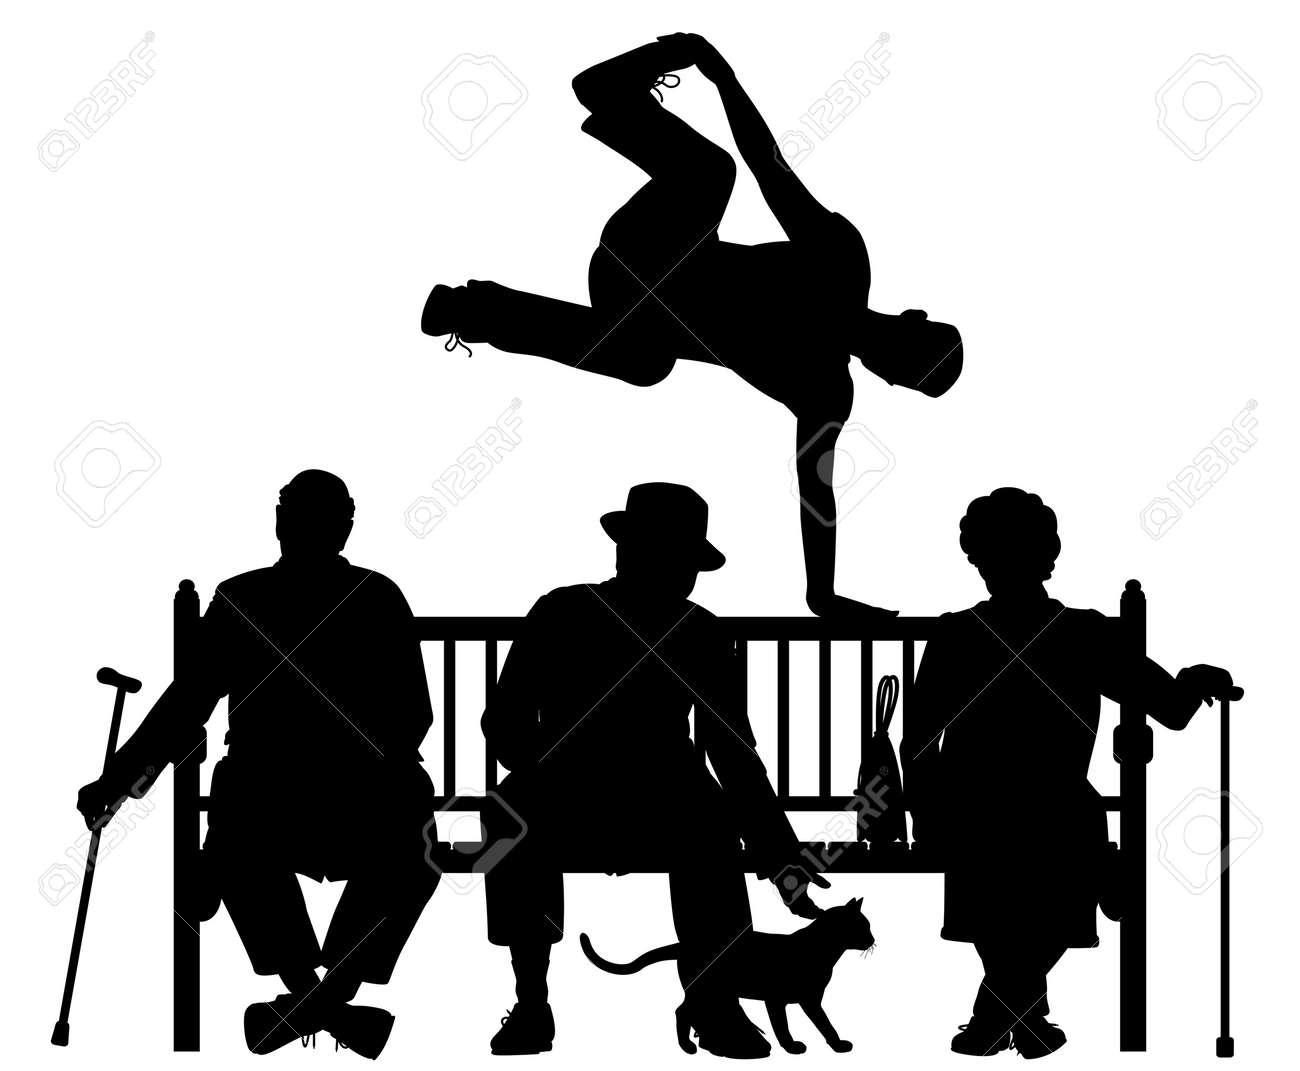 Editable Vector Silhouette Of A Young Man Vaulting Over Three ... for People On Bench Silhouette  45gtk